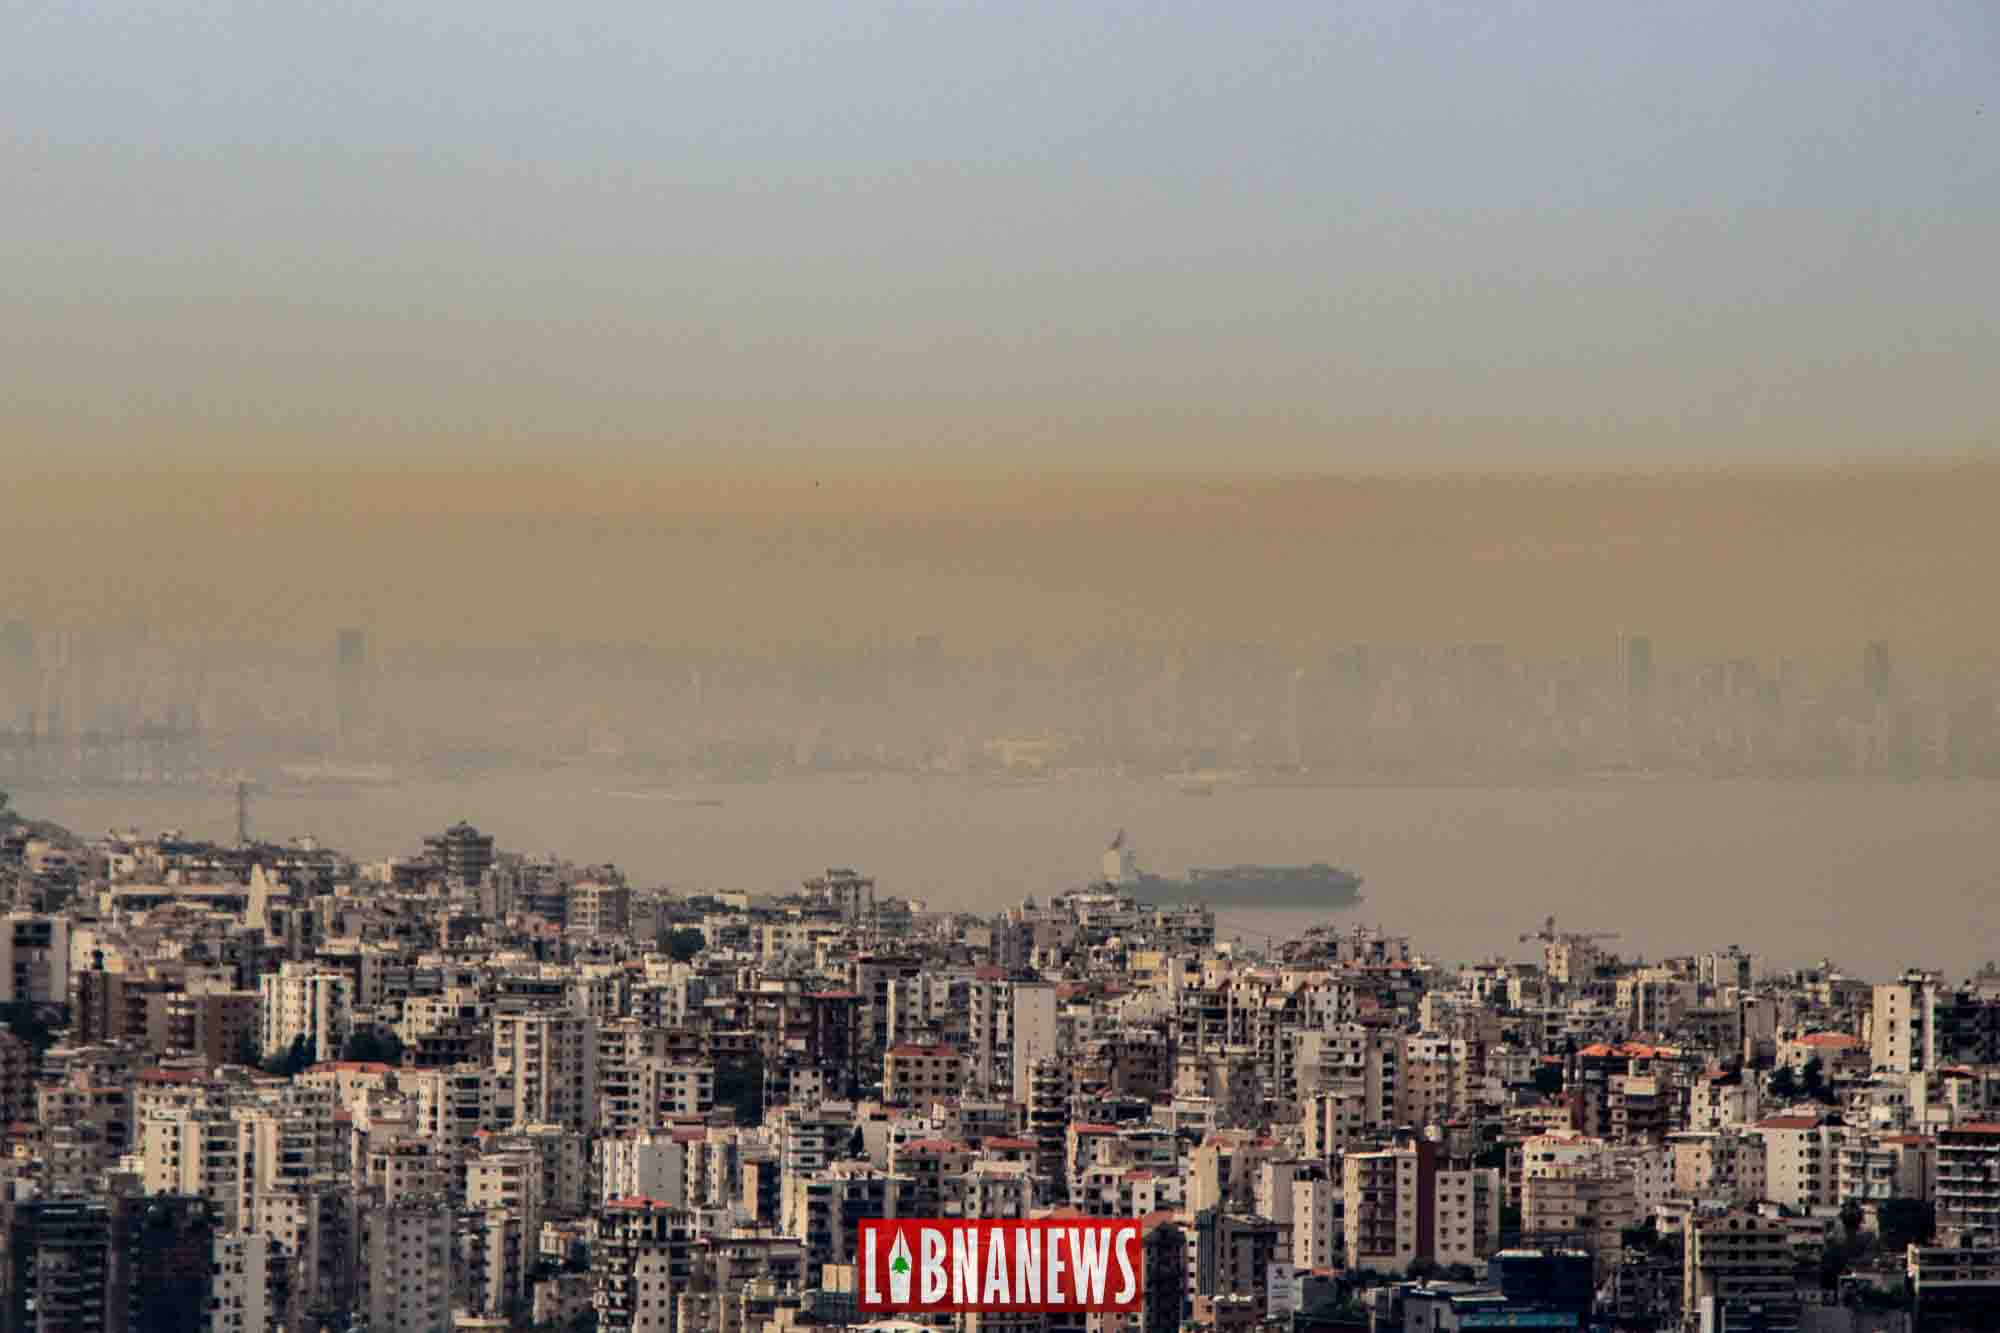 La pollution à Beyrouth. Crédit Photo: Libnanews.com